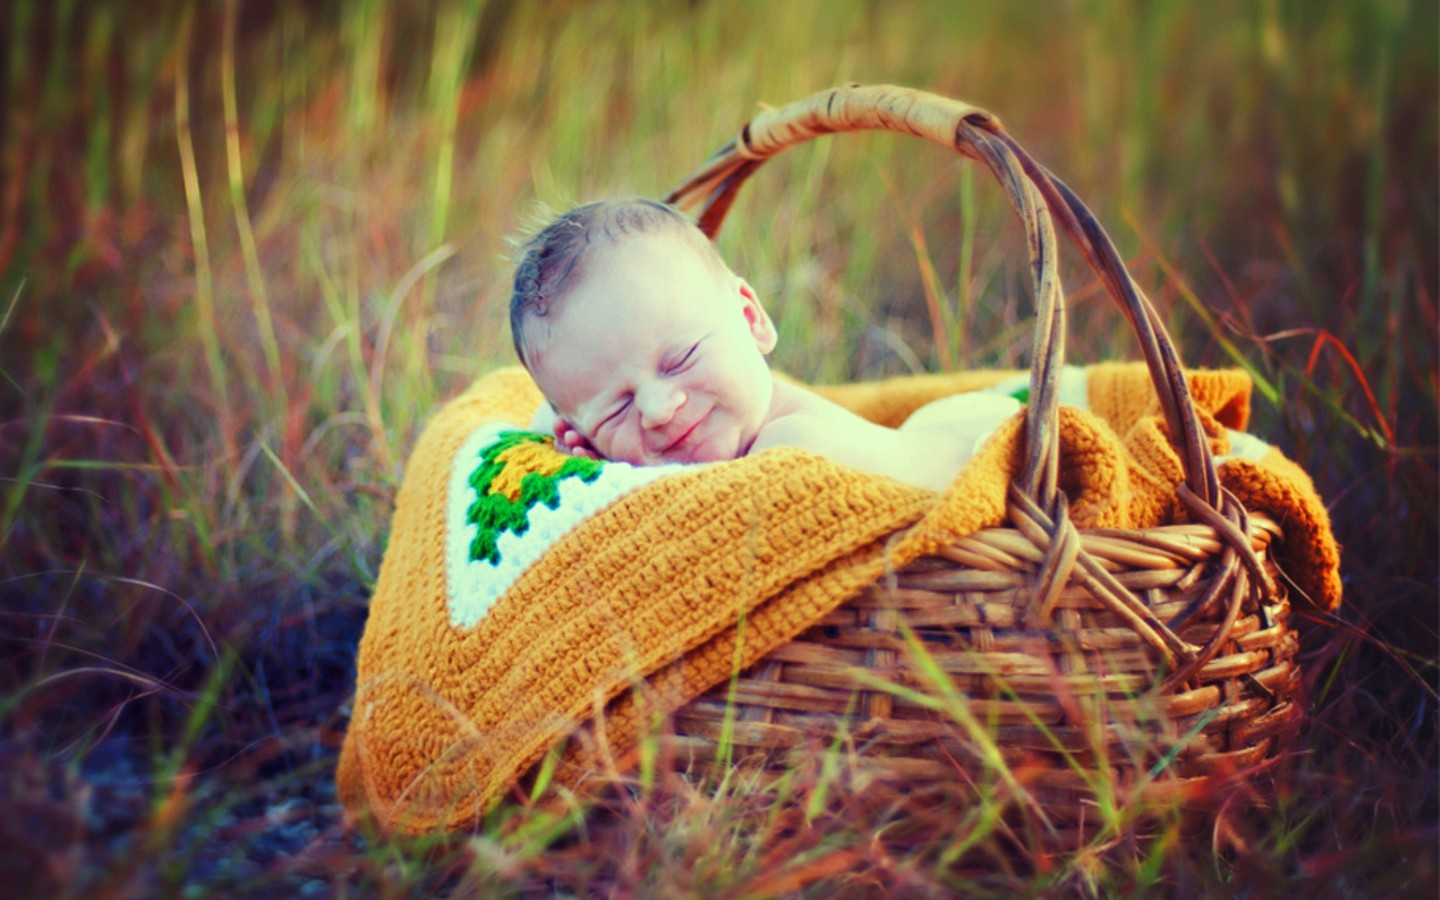 http://2.bp.blogspot.com/-VJg0qnwL_ec/UOvygkfj6qI/AAAAAAAAIkM/7XNoaGFxiBE/s1600/Cute%20Smiley%20Sleeping%20Baby%20In%20Basket%20HD%20Wallpaper-1440x900-cutelittlebabies.blogspot.com.jpg